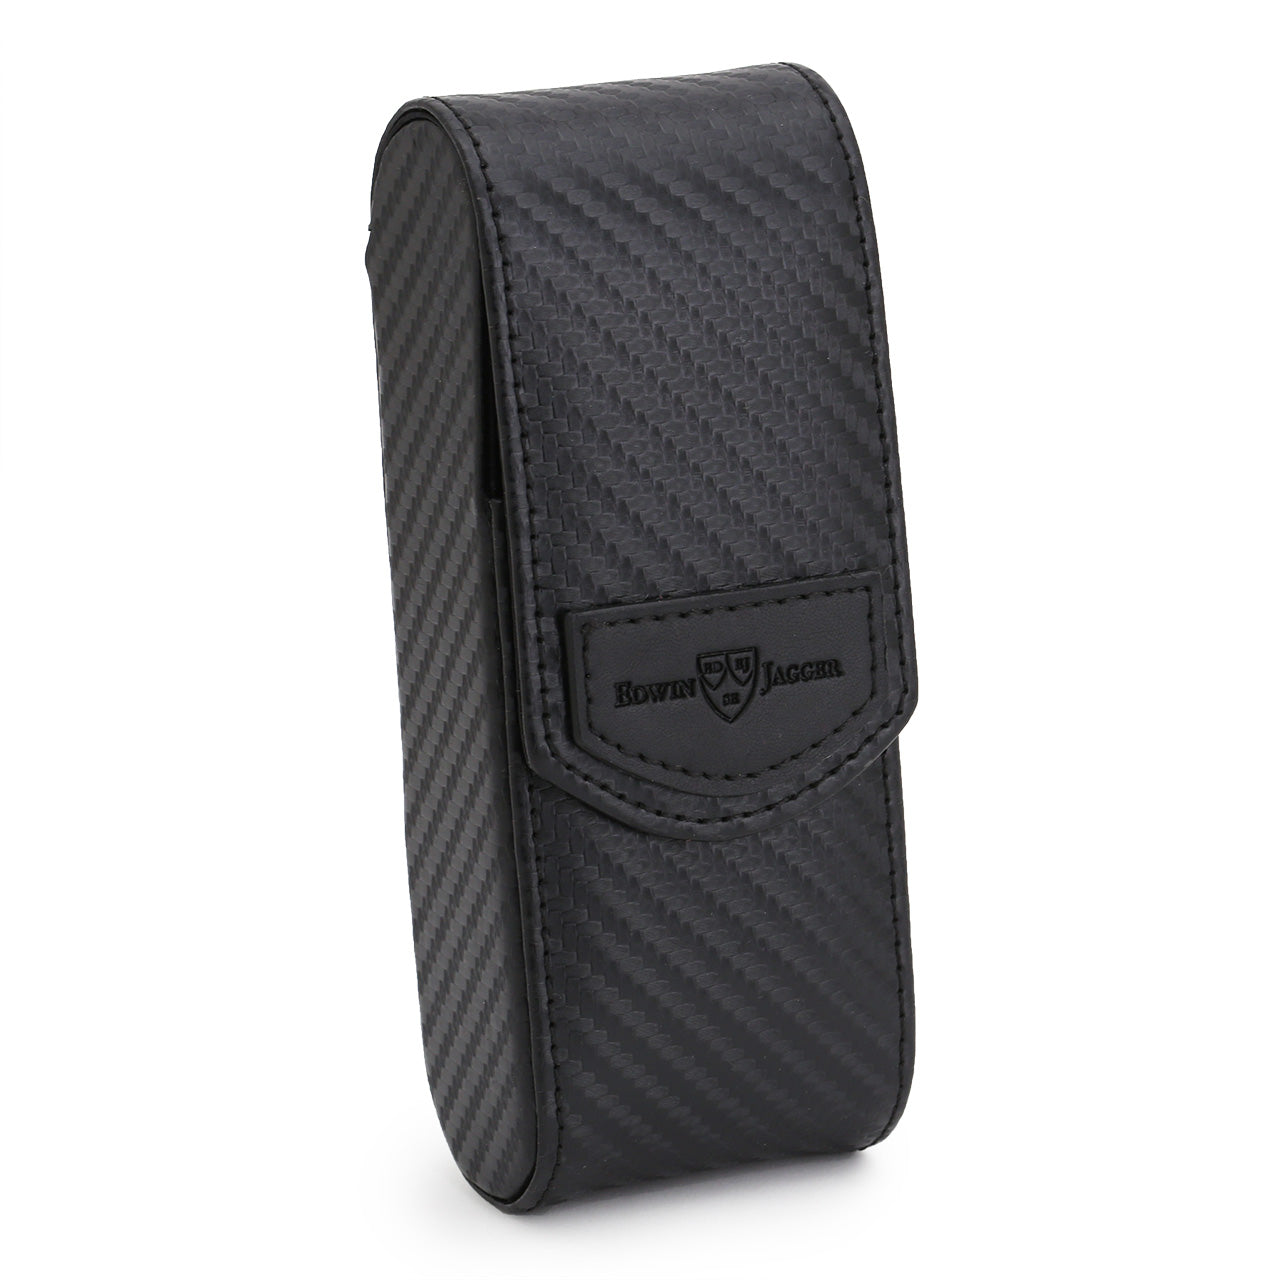 Edwin Jagger long razor case, Carbon Fibre effect